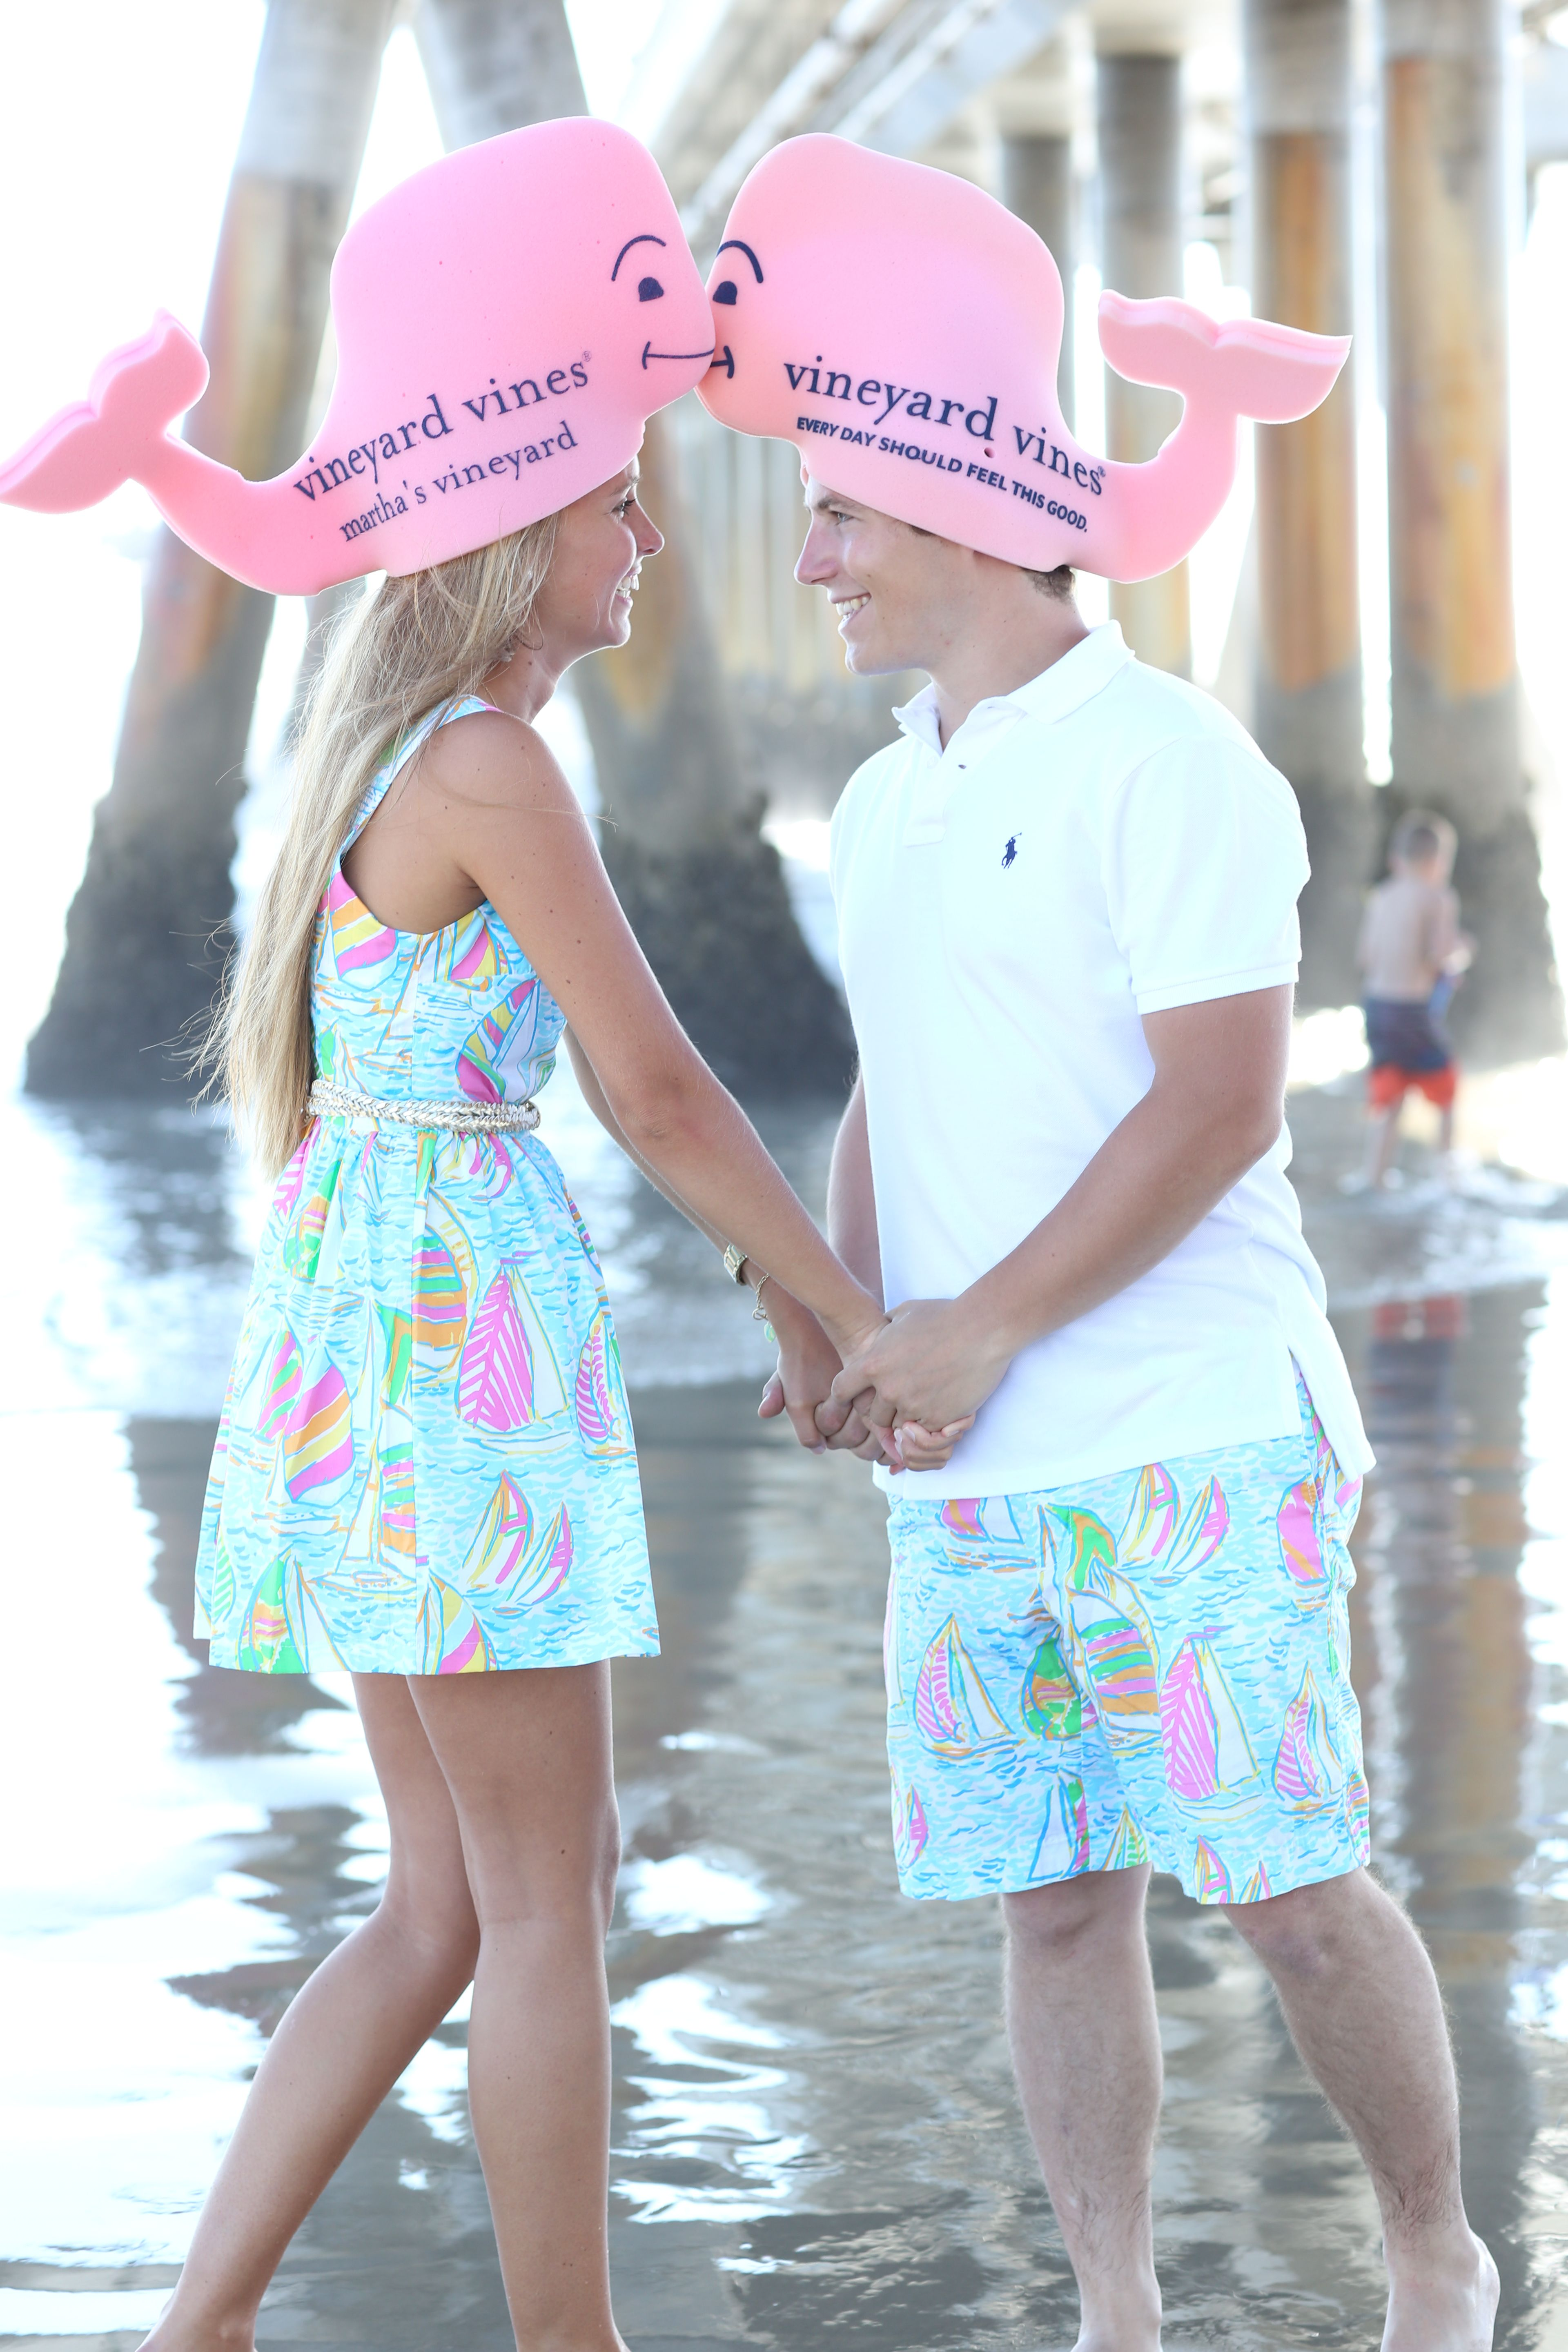 e024f4ab73d68 lilly pulitzer matching preppy couple you gotta regatta every day should  feel this good vineyard vines foam pink whale hat derby